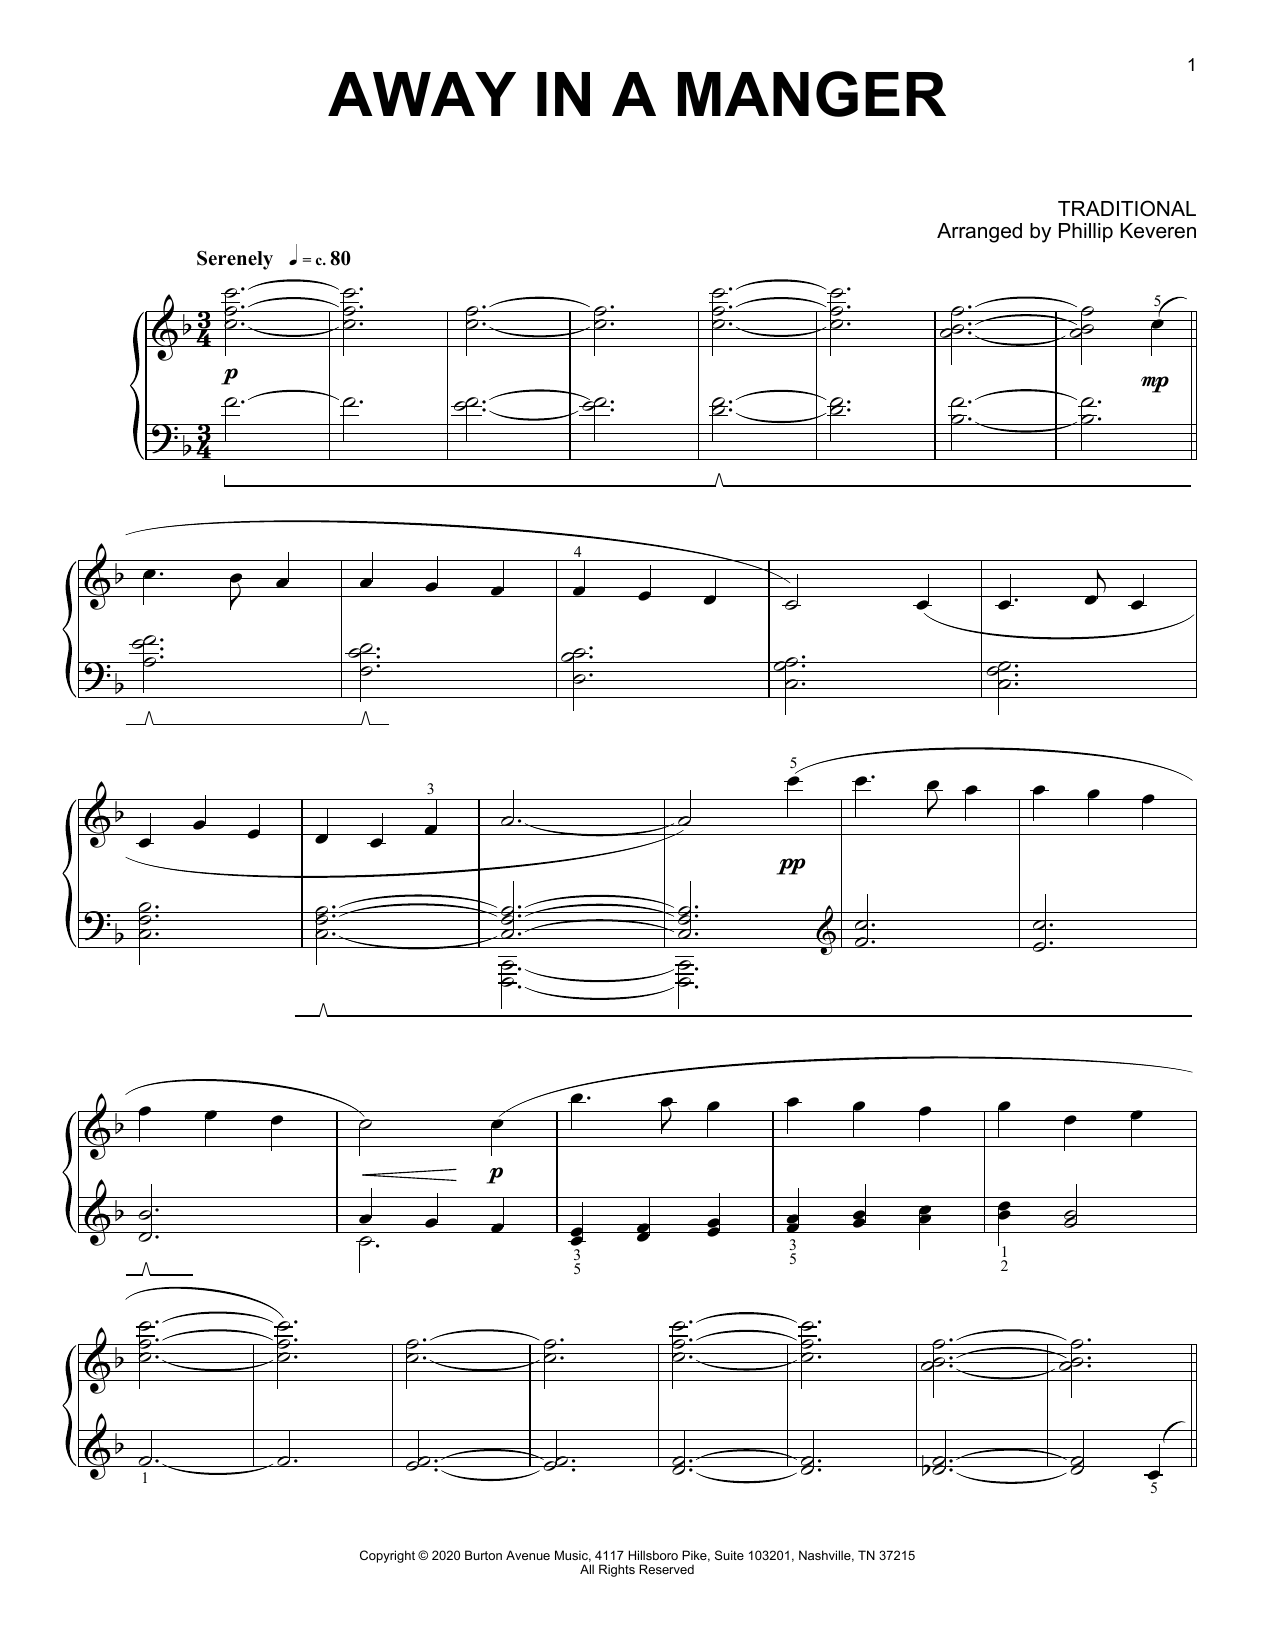 Traditional Away In A Manger (arr. Phillip Keveren) sheet music notes and chords. Download Printable PDF.